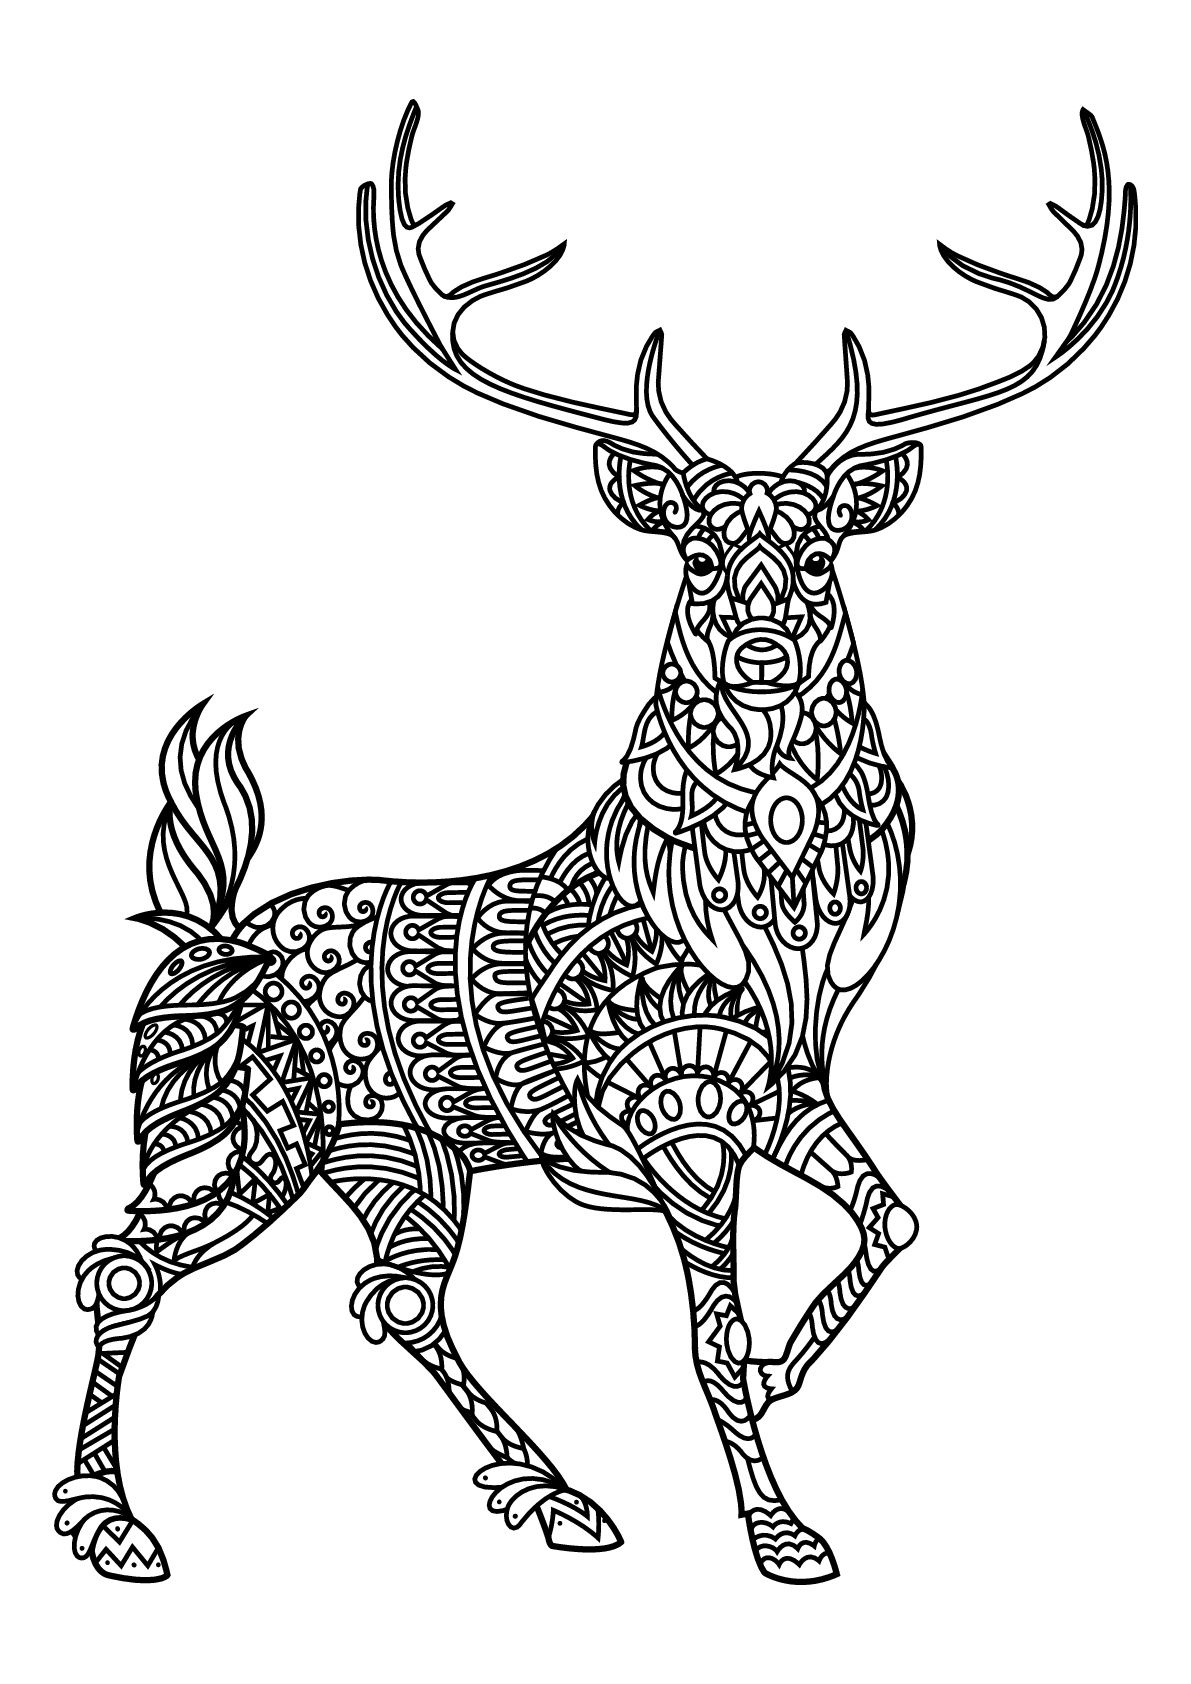 Reindeer Coloring Pages | Deer coloring pages, Cat ...